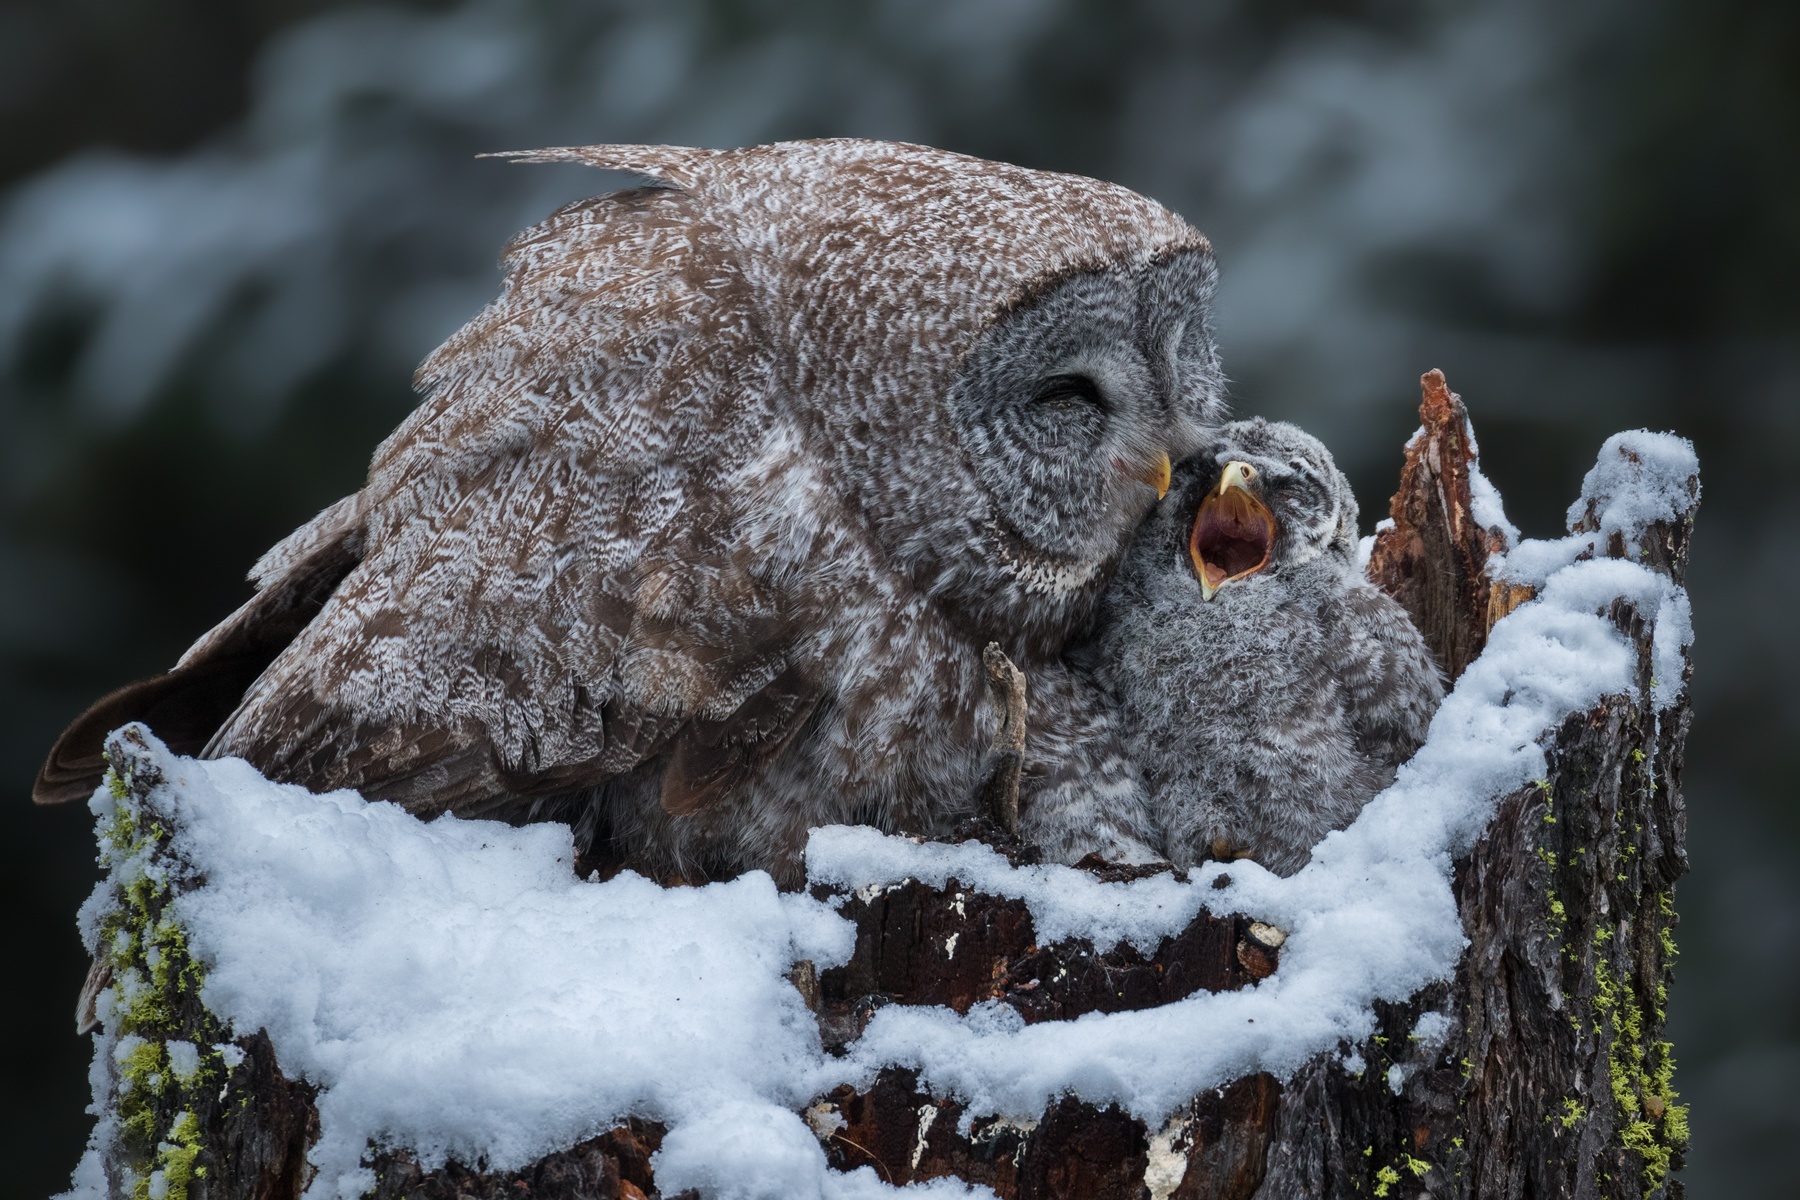 After a cold spring night brought a substantial snowfall to the mountains of British Columbia's Southern Interior, a mother comforts one of her three waking chicks.